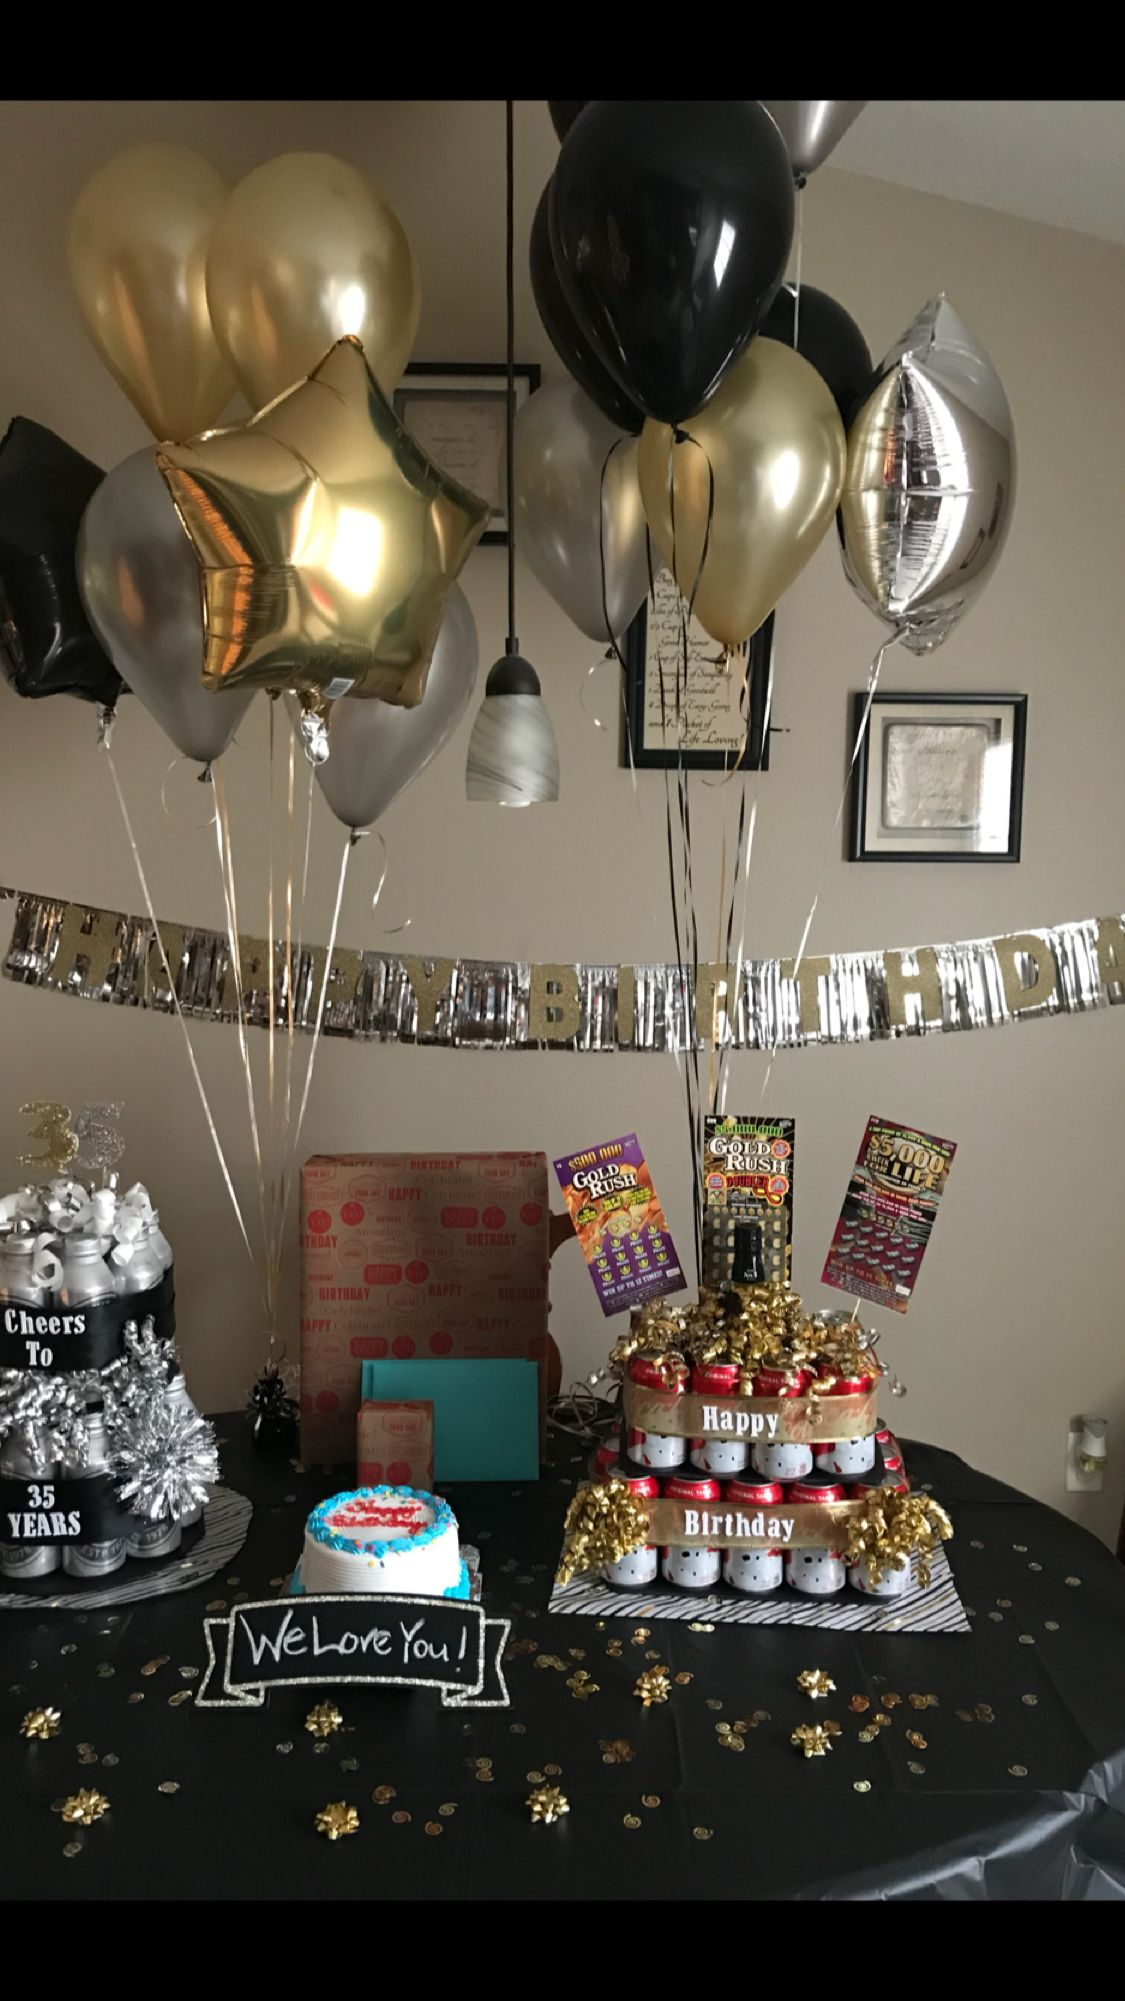 husband birthday surprise | gift ideas | pinterest | birthday, 40th